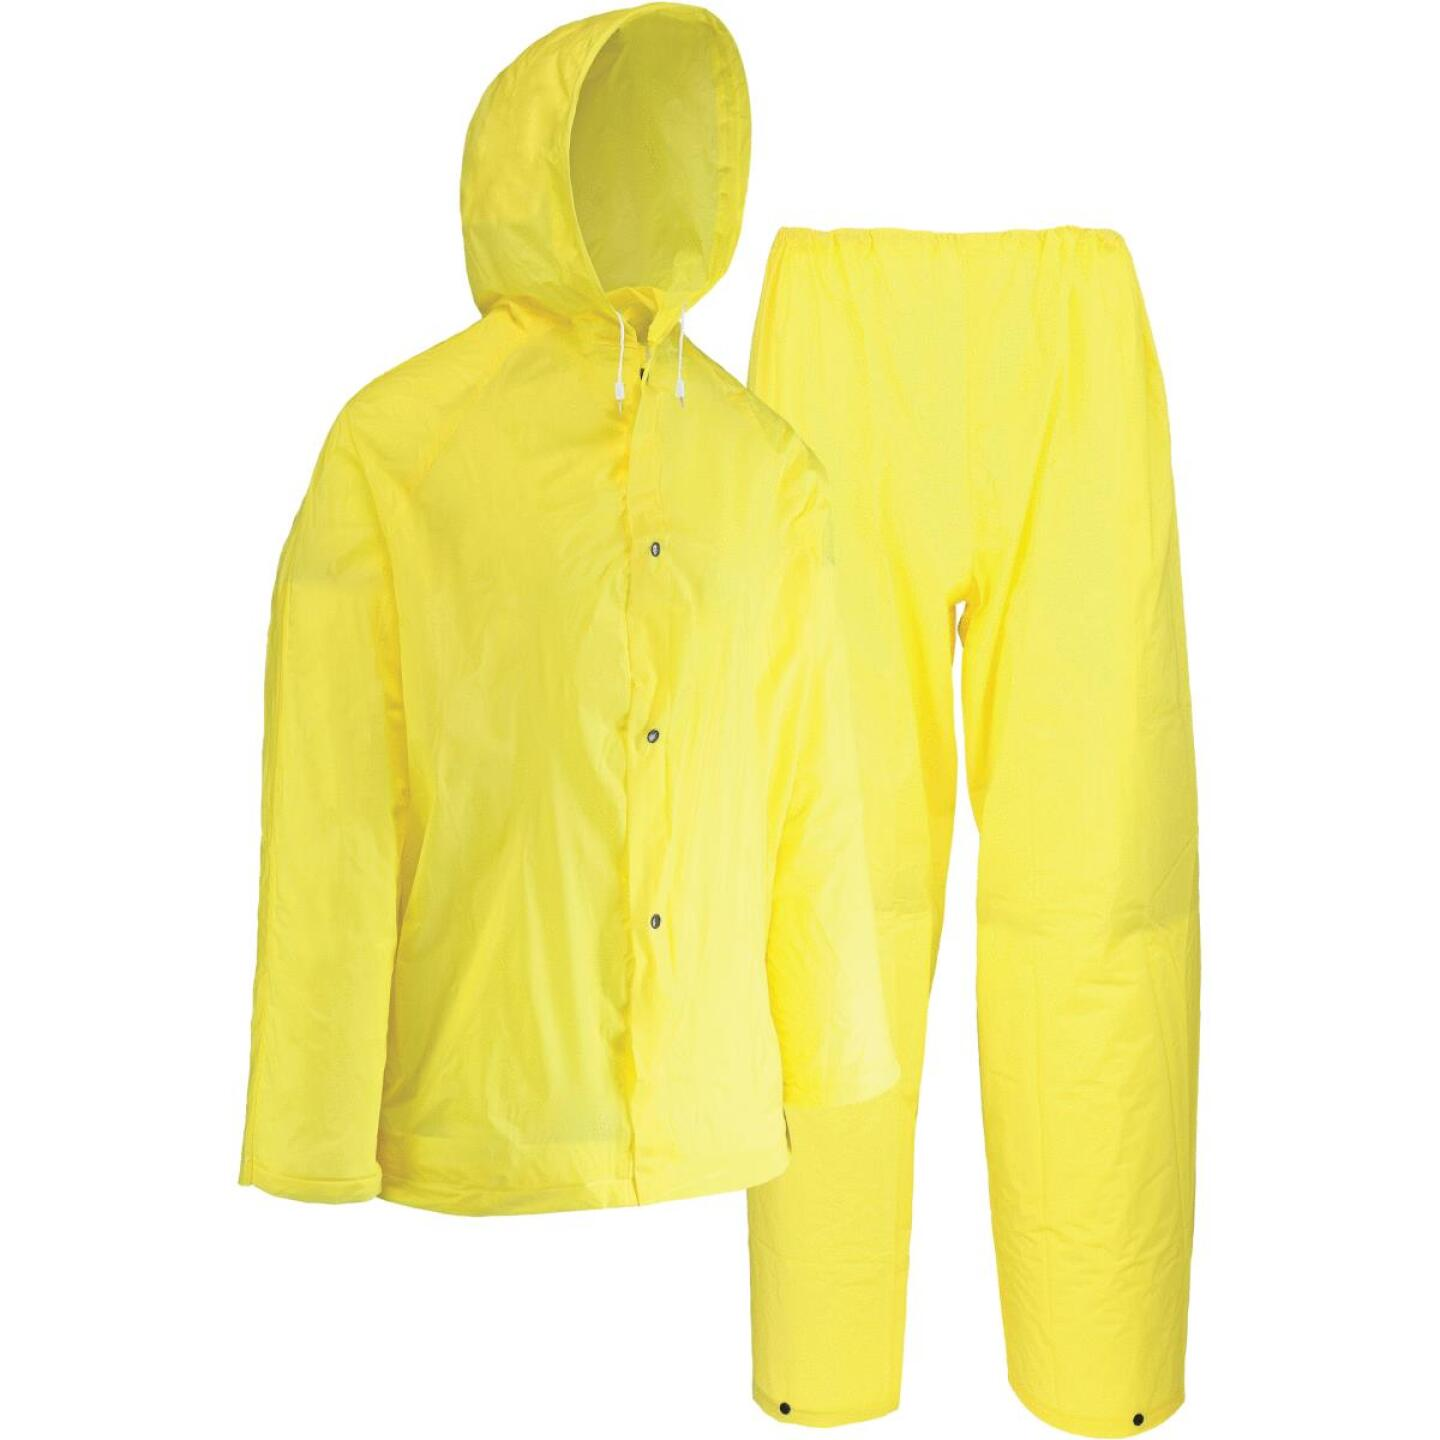 West Chester 2XL 2-Piece Yellow EVA Rain Suit Image 1